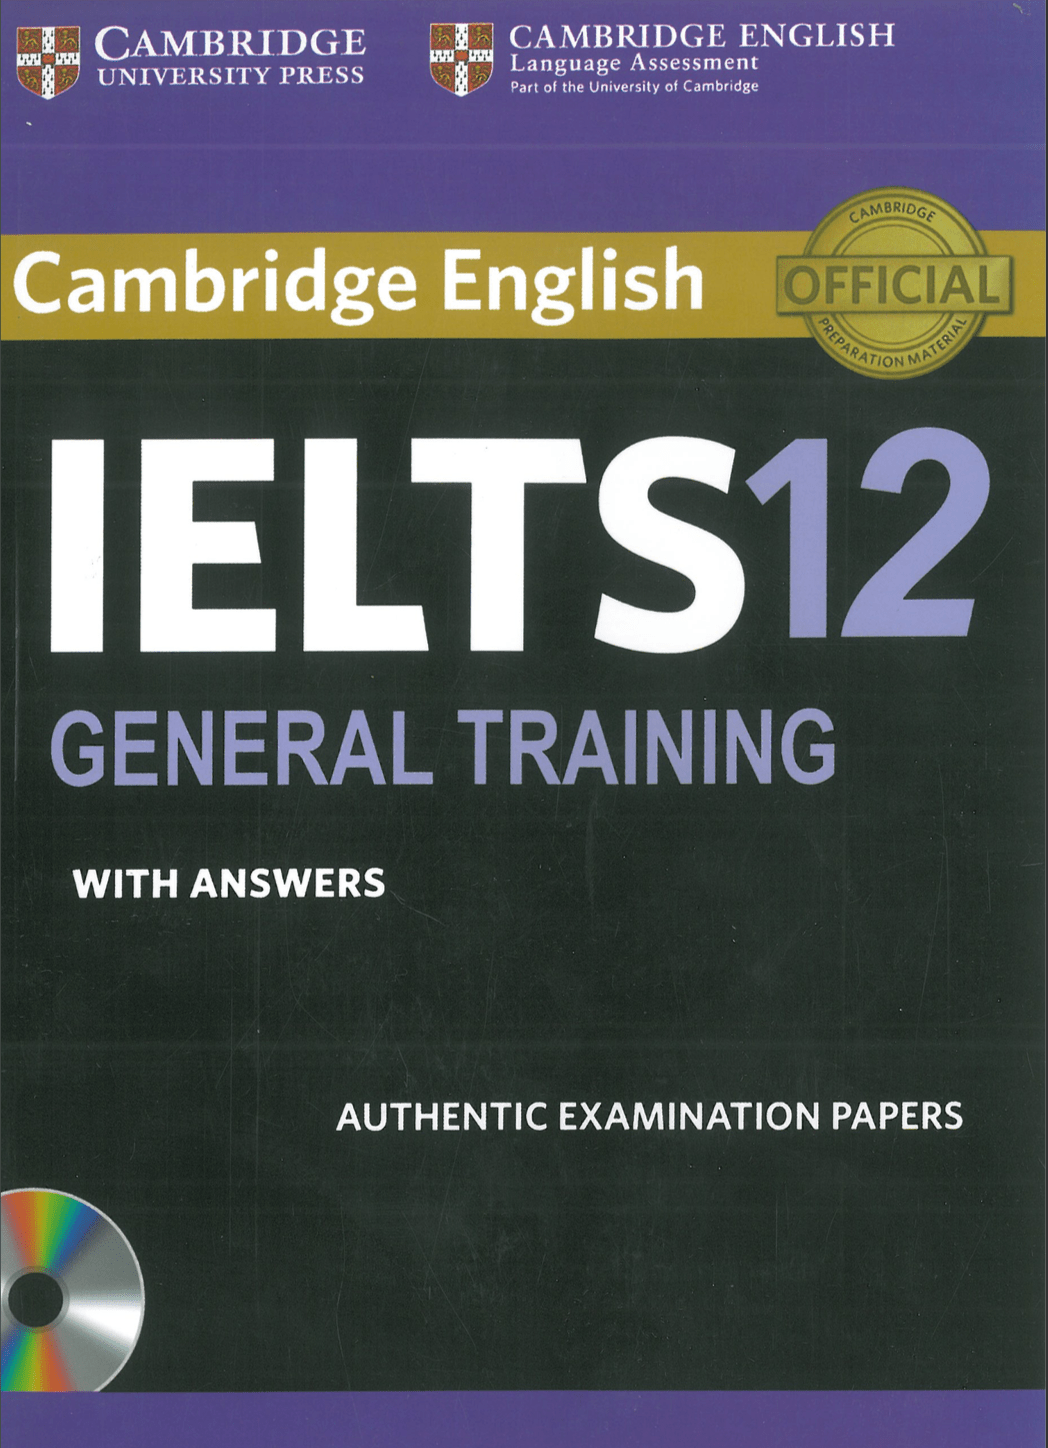 Cambridge IELTS 12 General Training Student's Book with